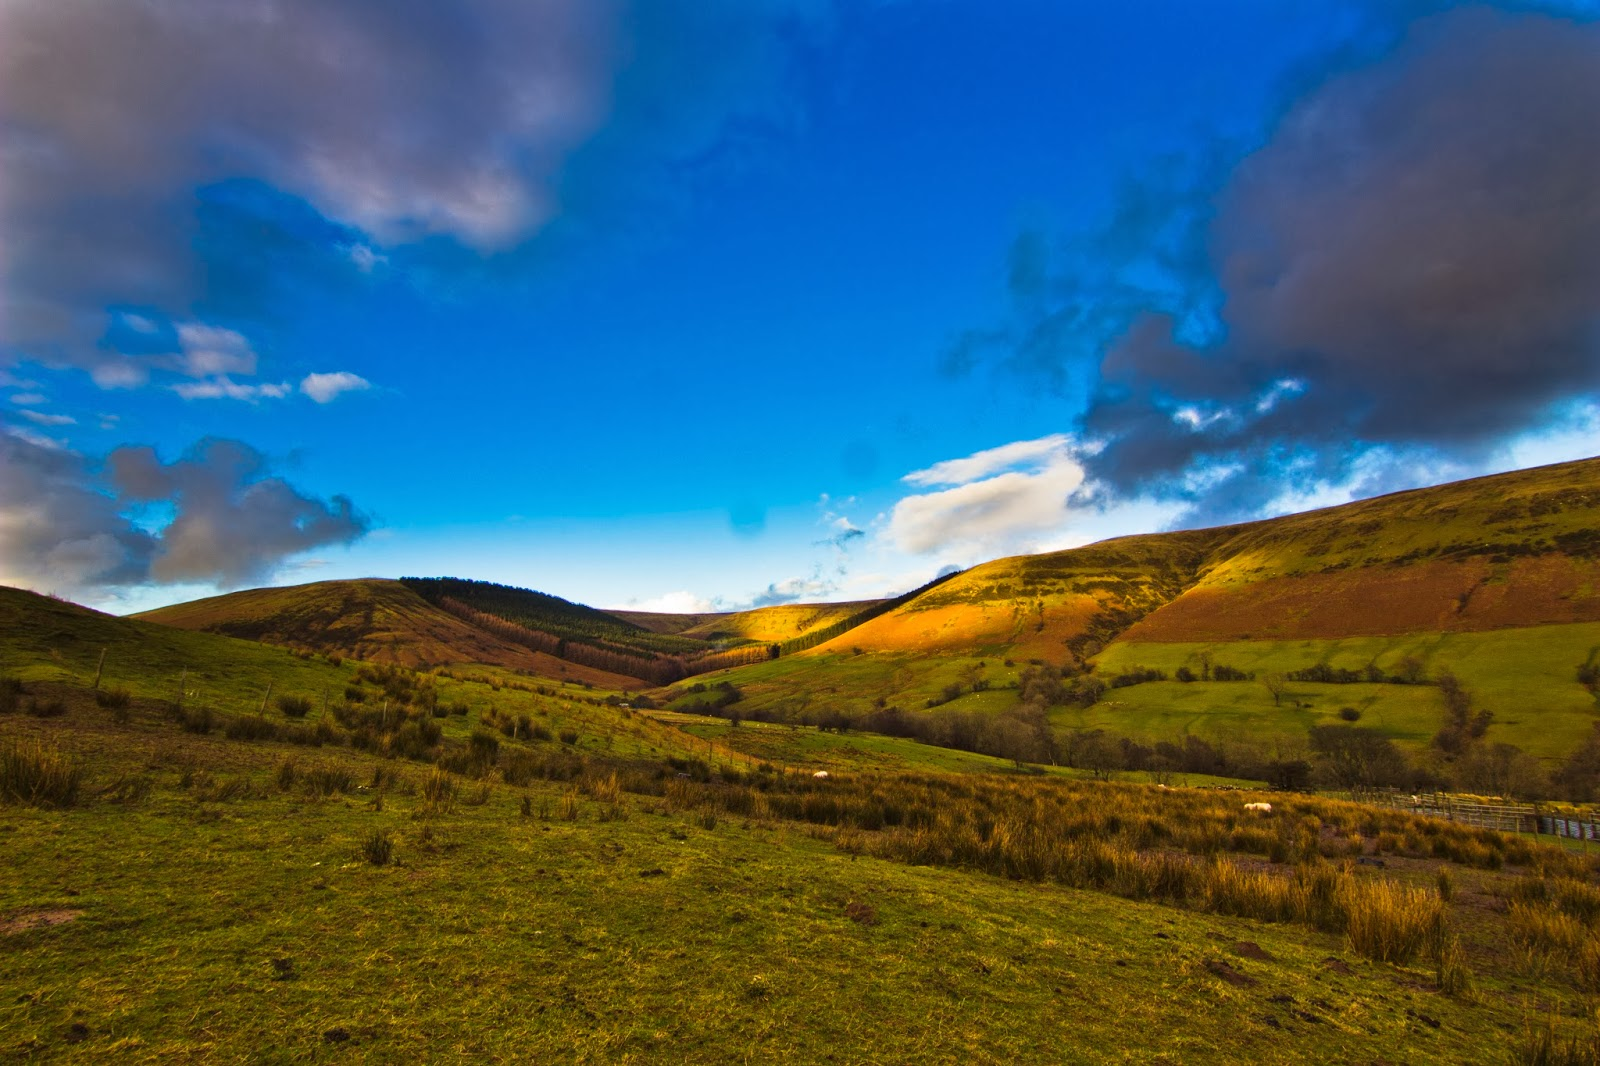 Vale of Ewyas (Black Mountains, South Wales)